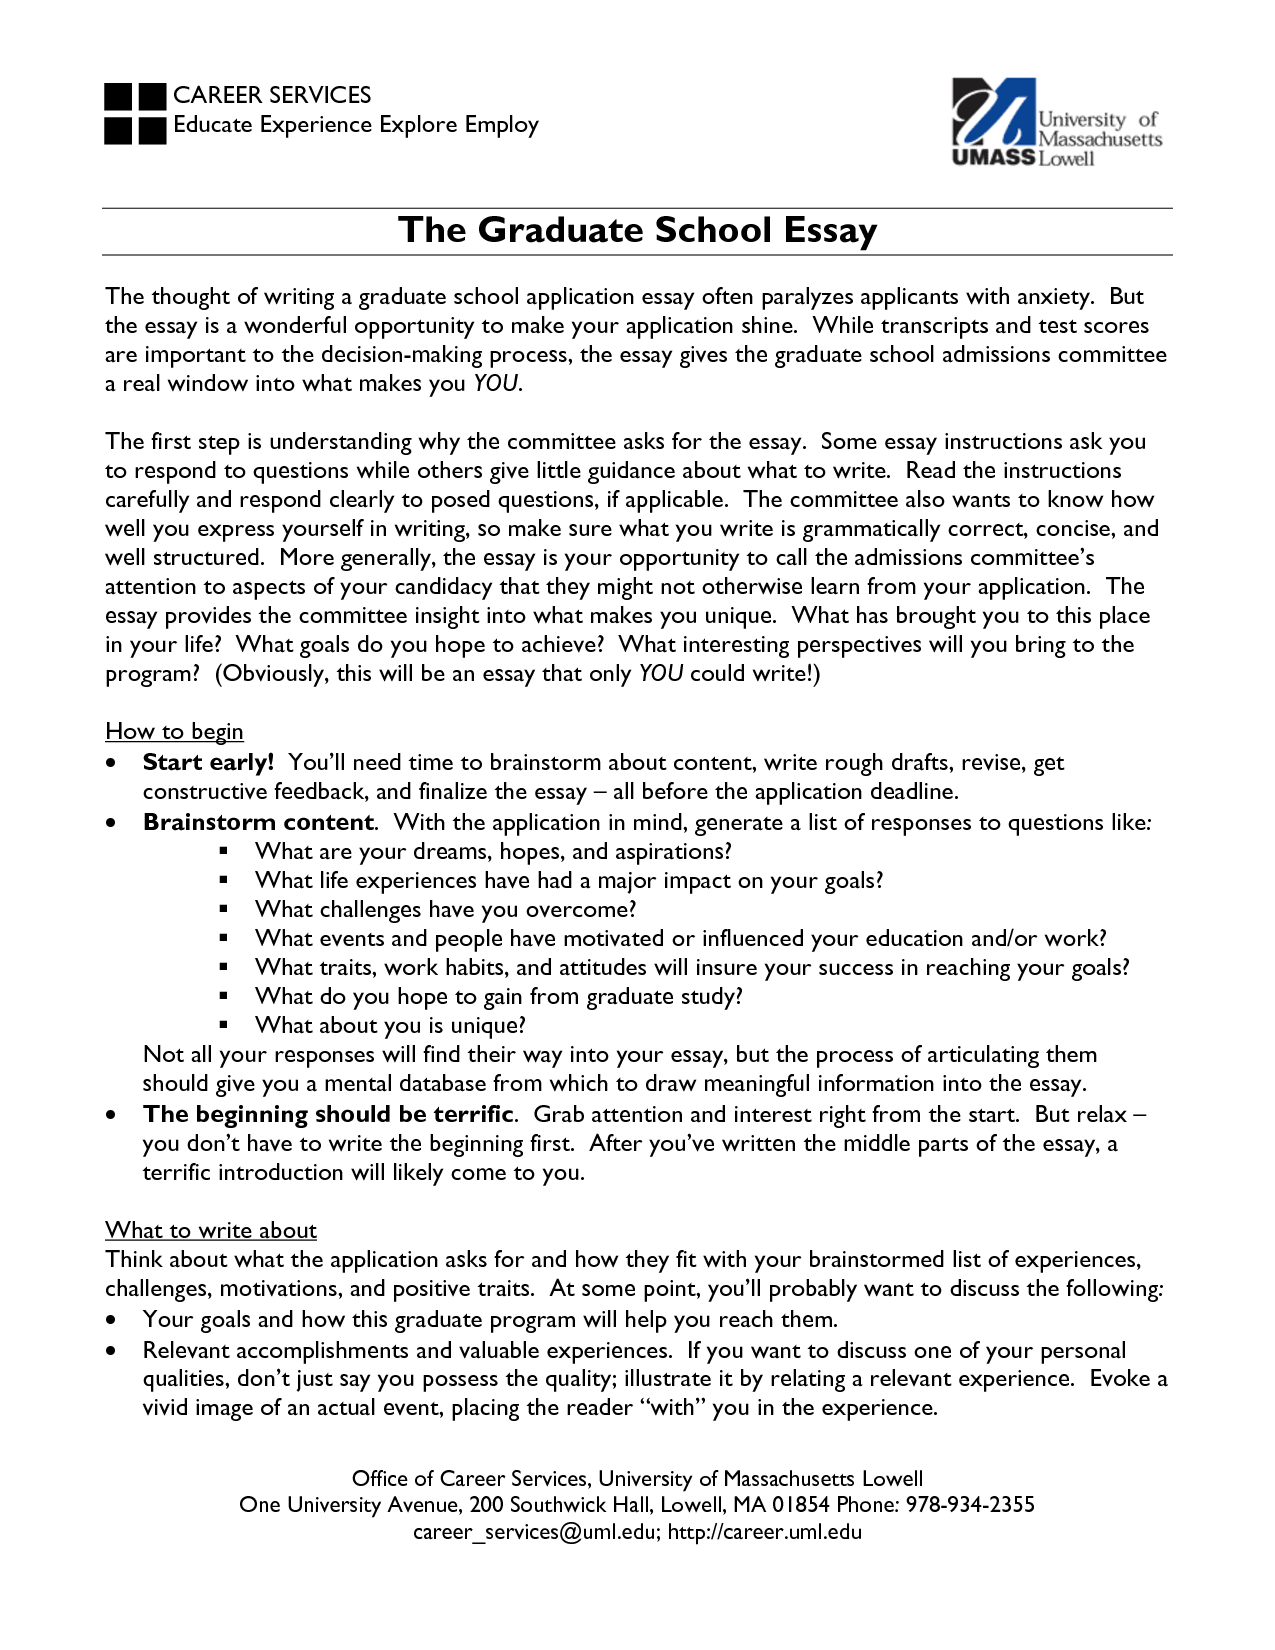 admissions essay for graduate school Our writers are well versed in the graduate school admission essay and can help you create a version that will gain favor and notice.